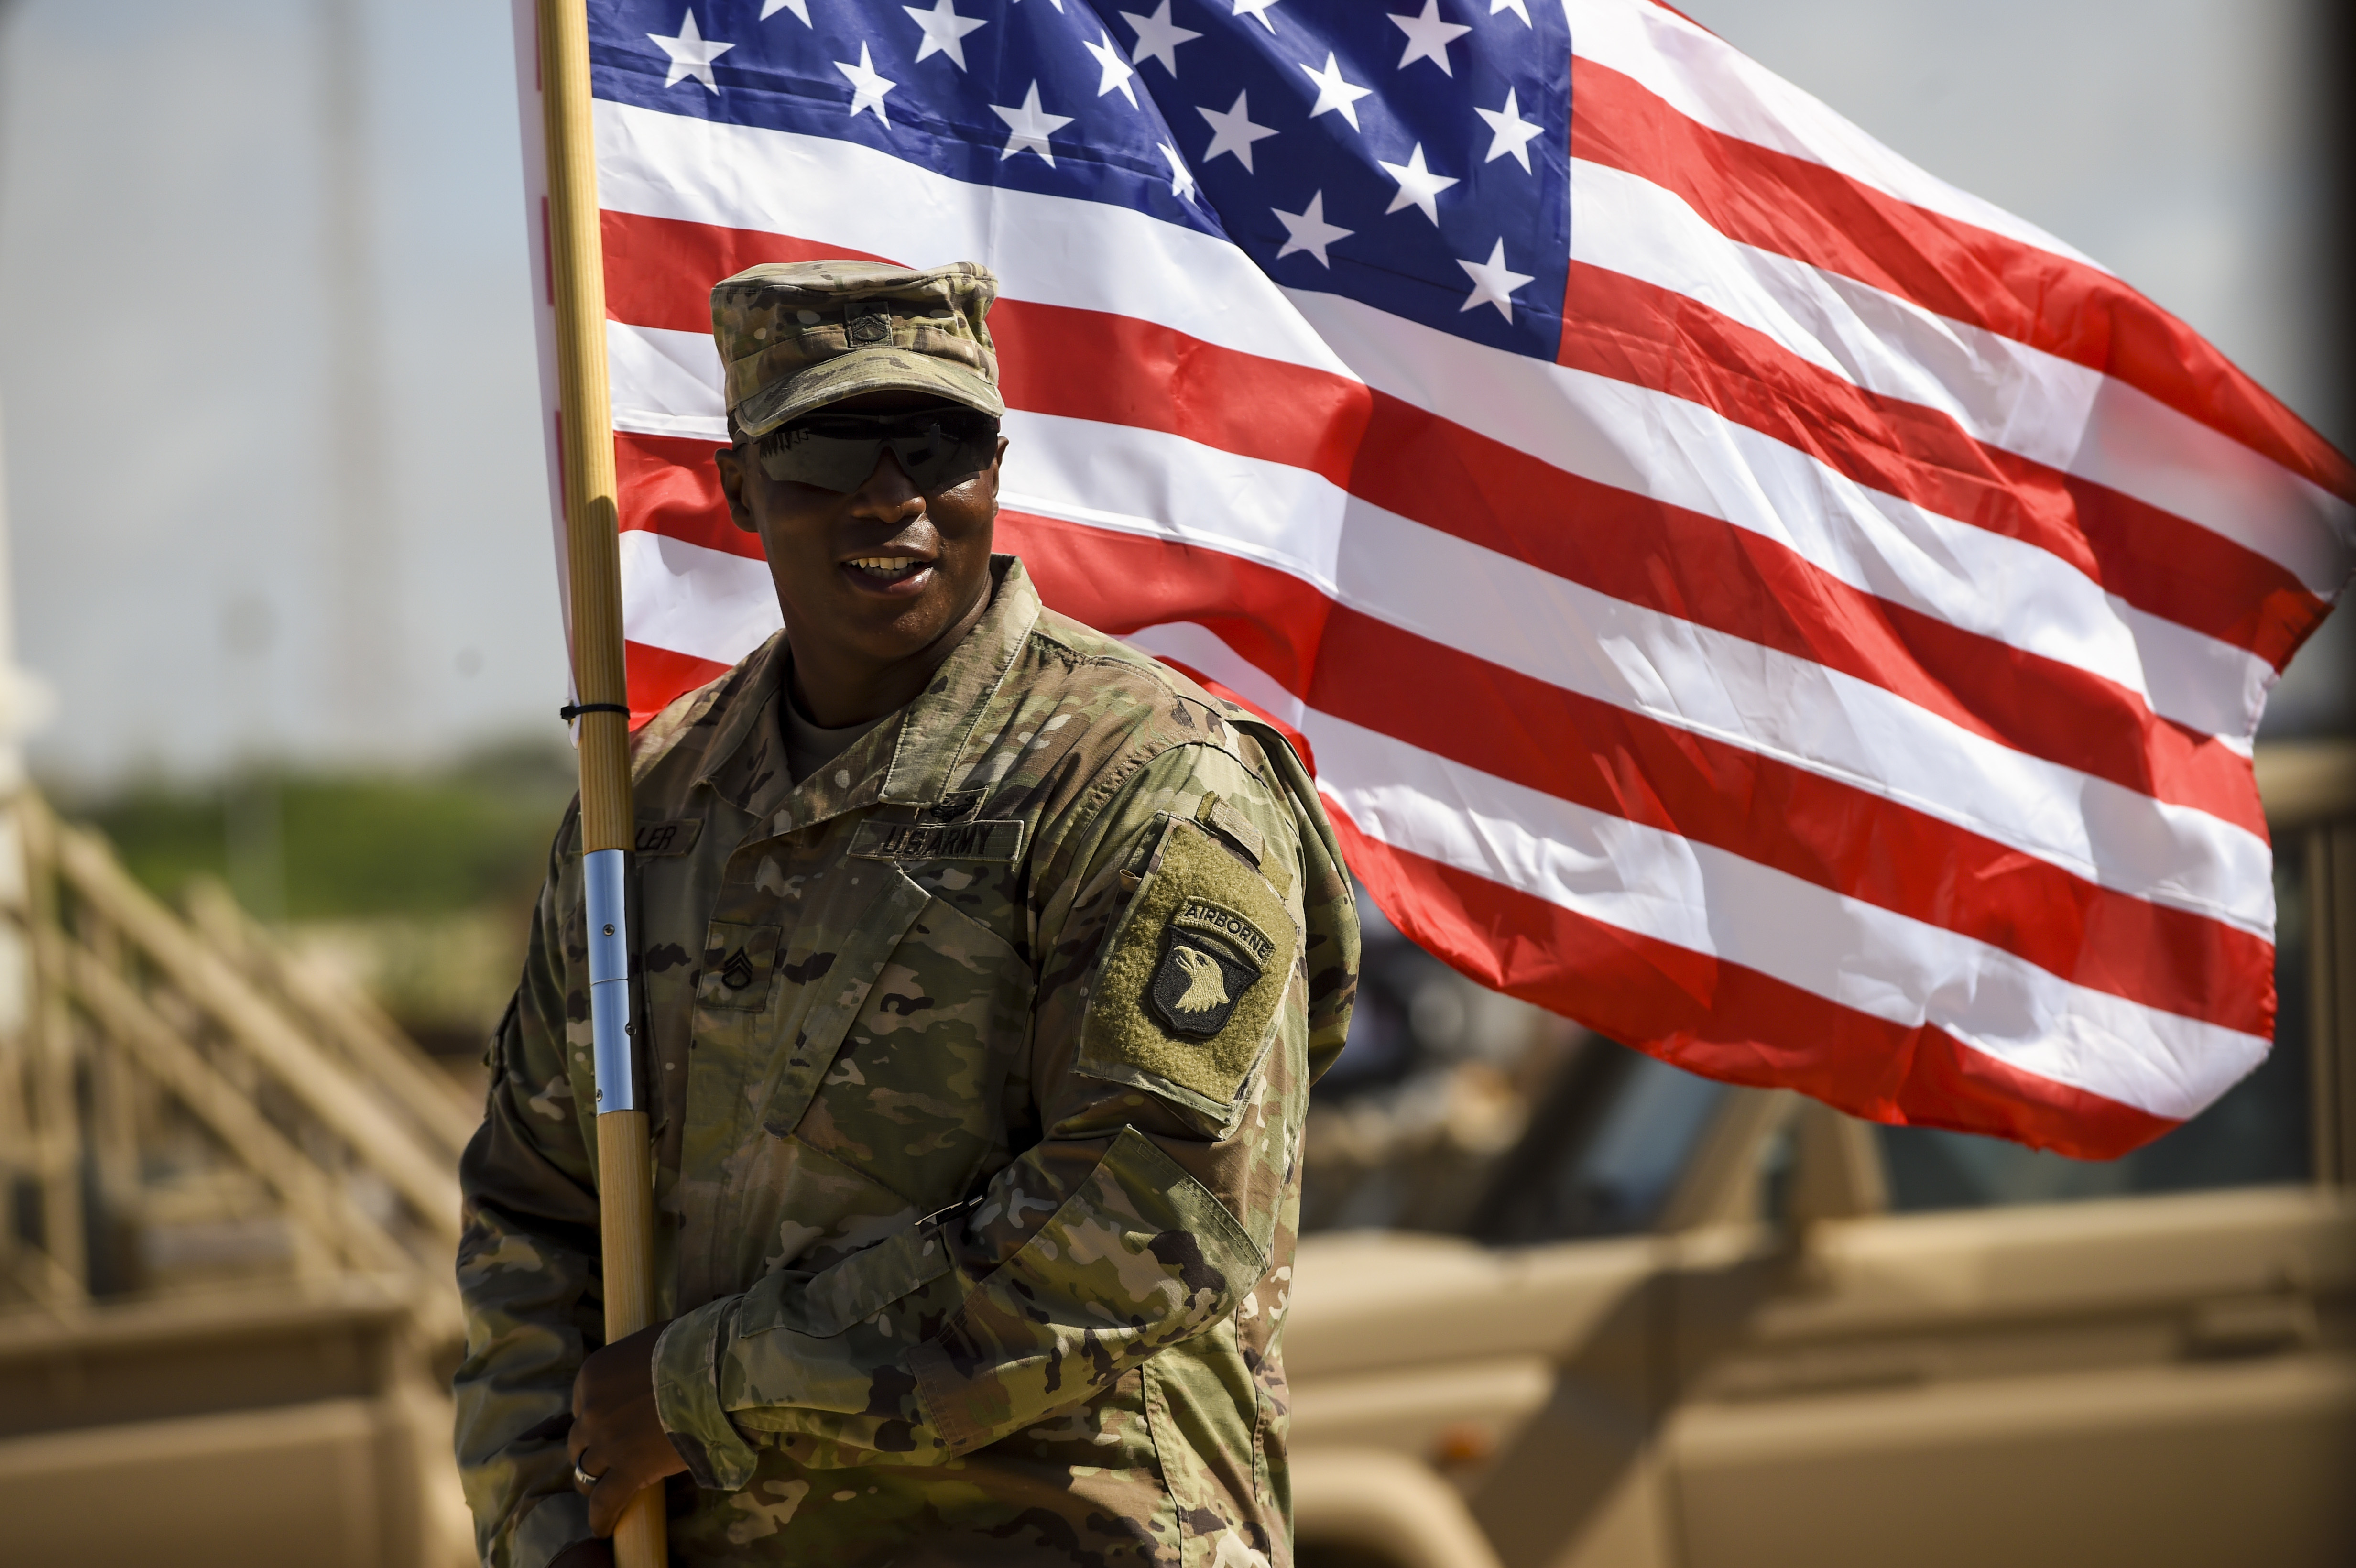 U.S. Army Staff Sgt. Anthony Miller with the 101st Airborne Division  holds the American flag during a graduation ceremony for Somali National Army soldiers May 24, 2017, in Mogadishu, Somalia. The logistics course focused on various aspects of moving personnel, equipment and supplies. (U.S. Air Force photo by Staff Sgt. Nicholas M. Byers)